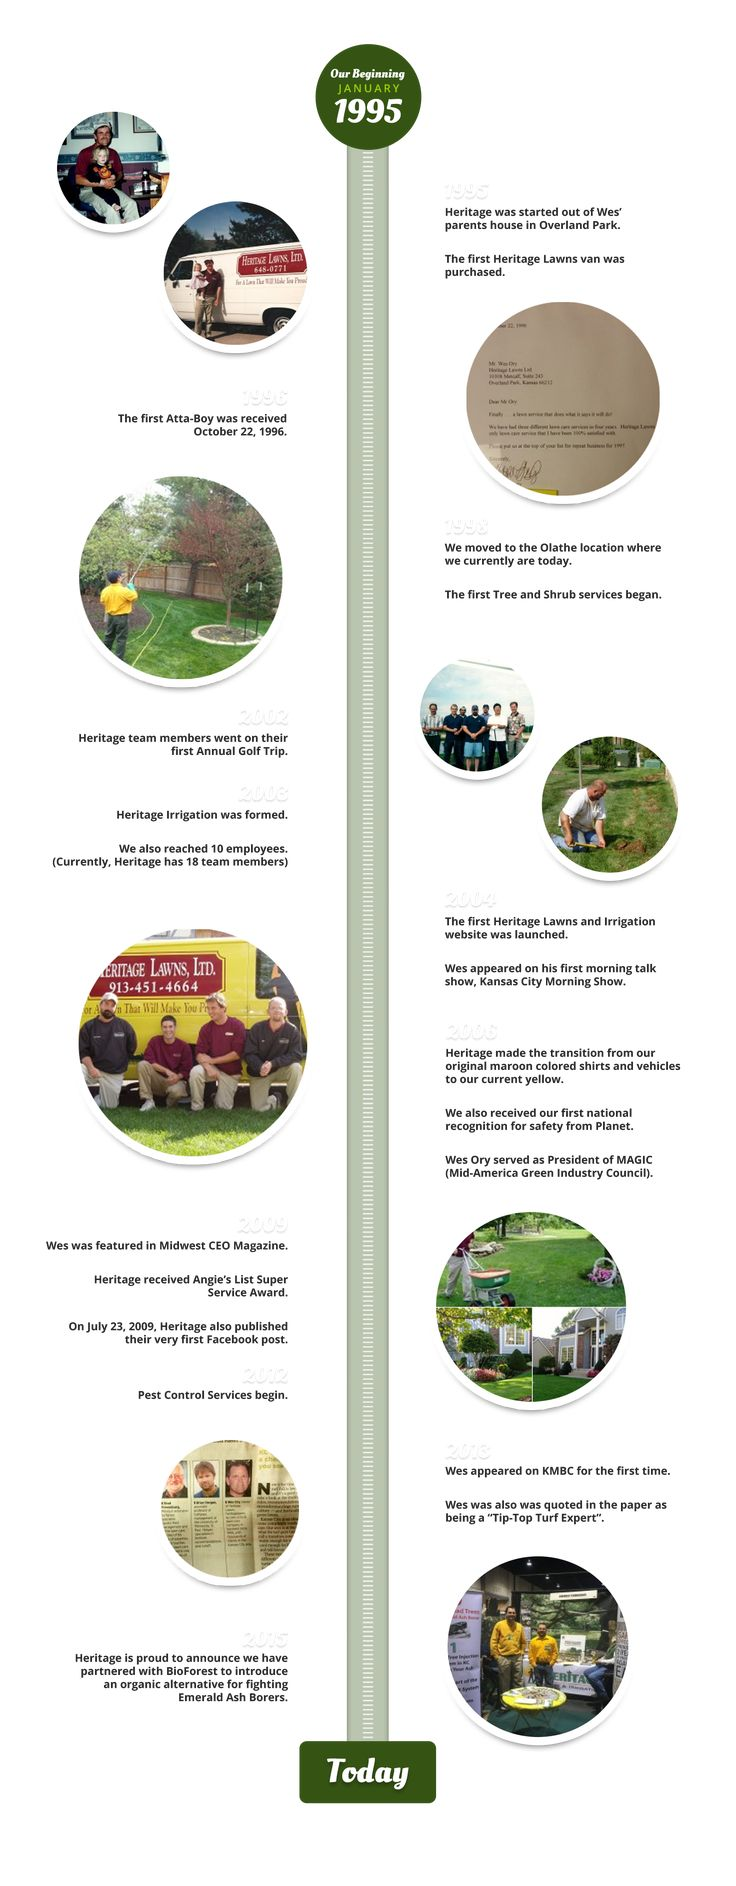 A History of Heritage Lawns & Irrigation. Family-Owned company with an emphasis on Earth-Friendly Lawn Care Service in the Kansas City & Overland Park areas. #lawncare #kansascity #lawnservice #overlandpark #ks